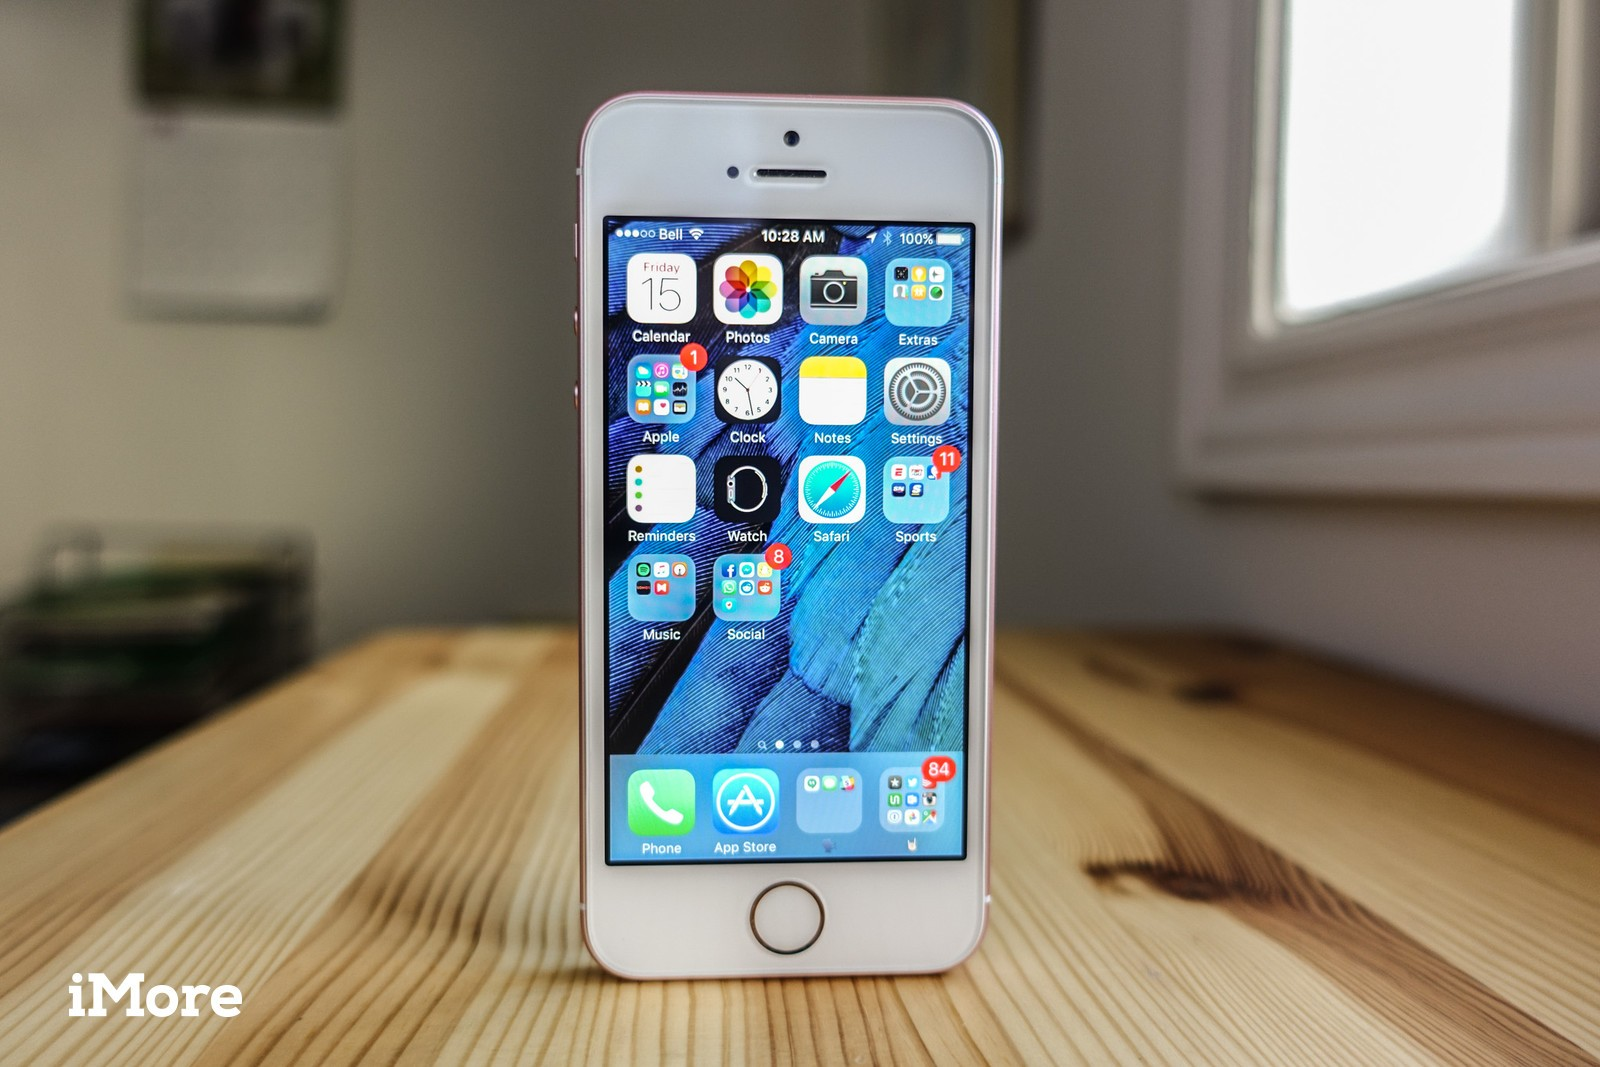 db8f1c7a71 iPhone SE 2 rumors: Release date, specs, price, and features! | iMore